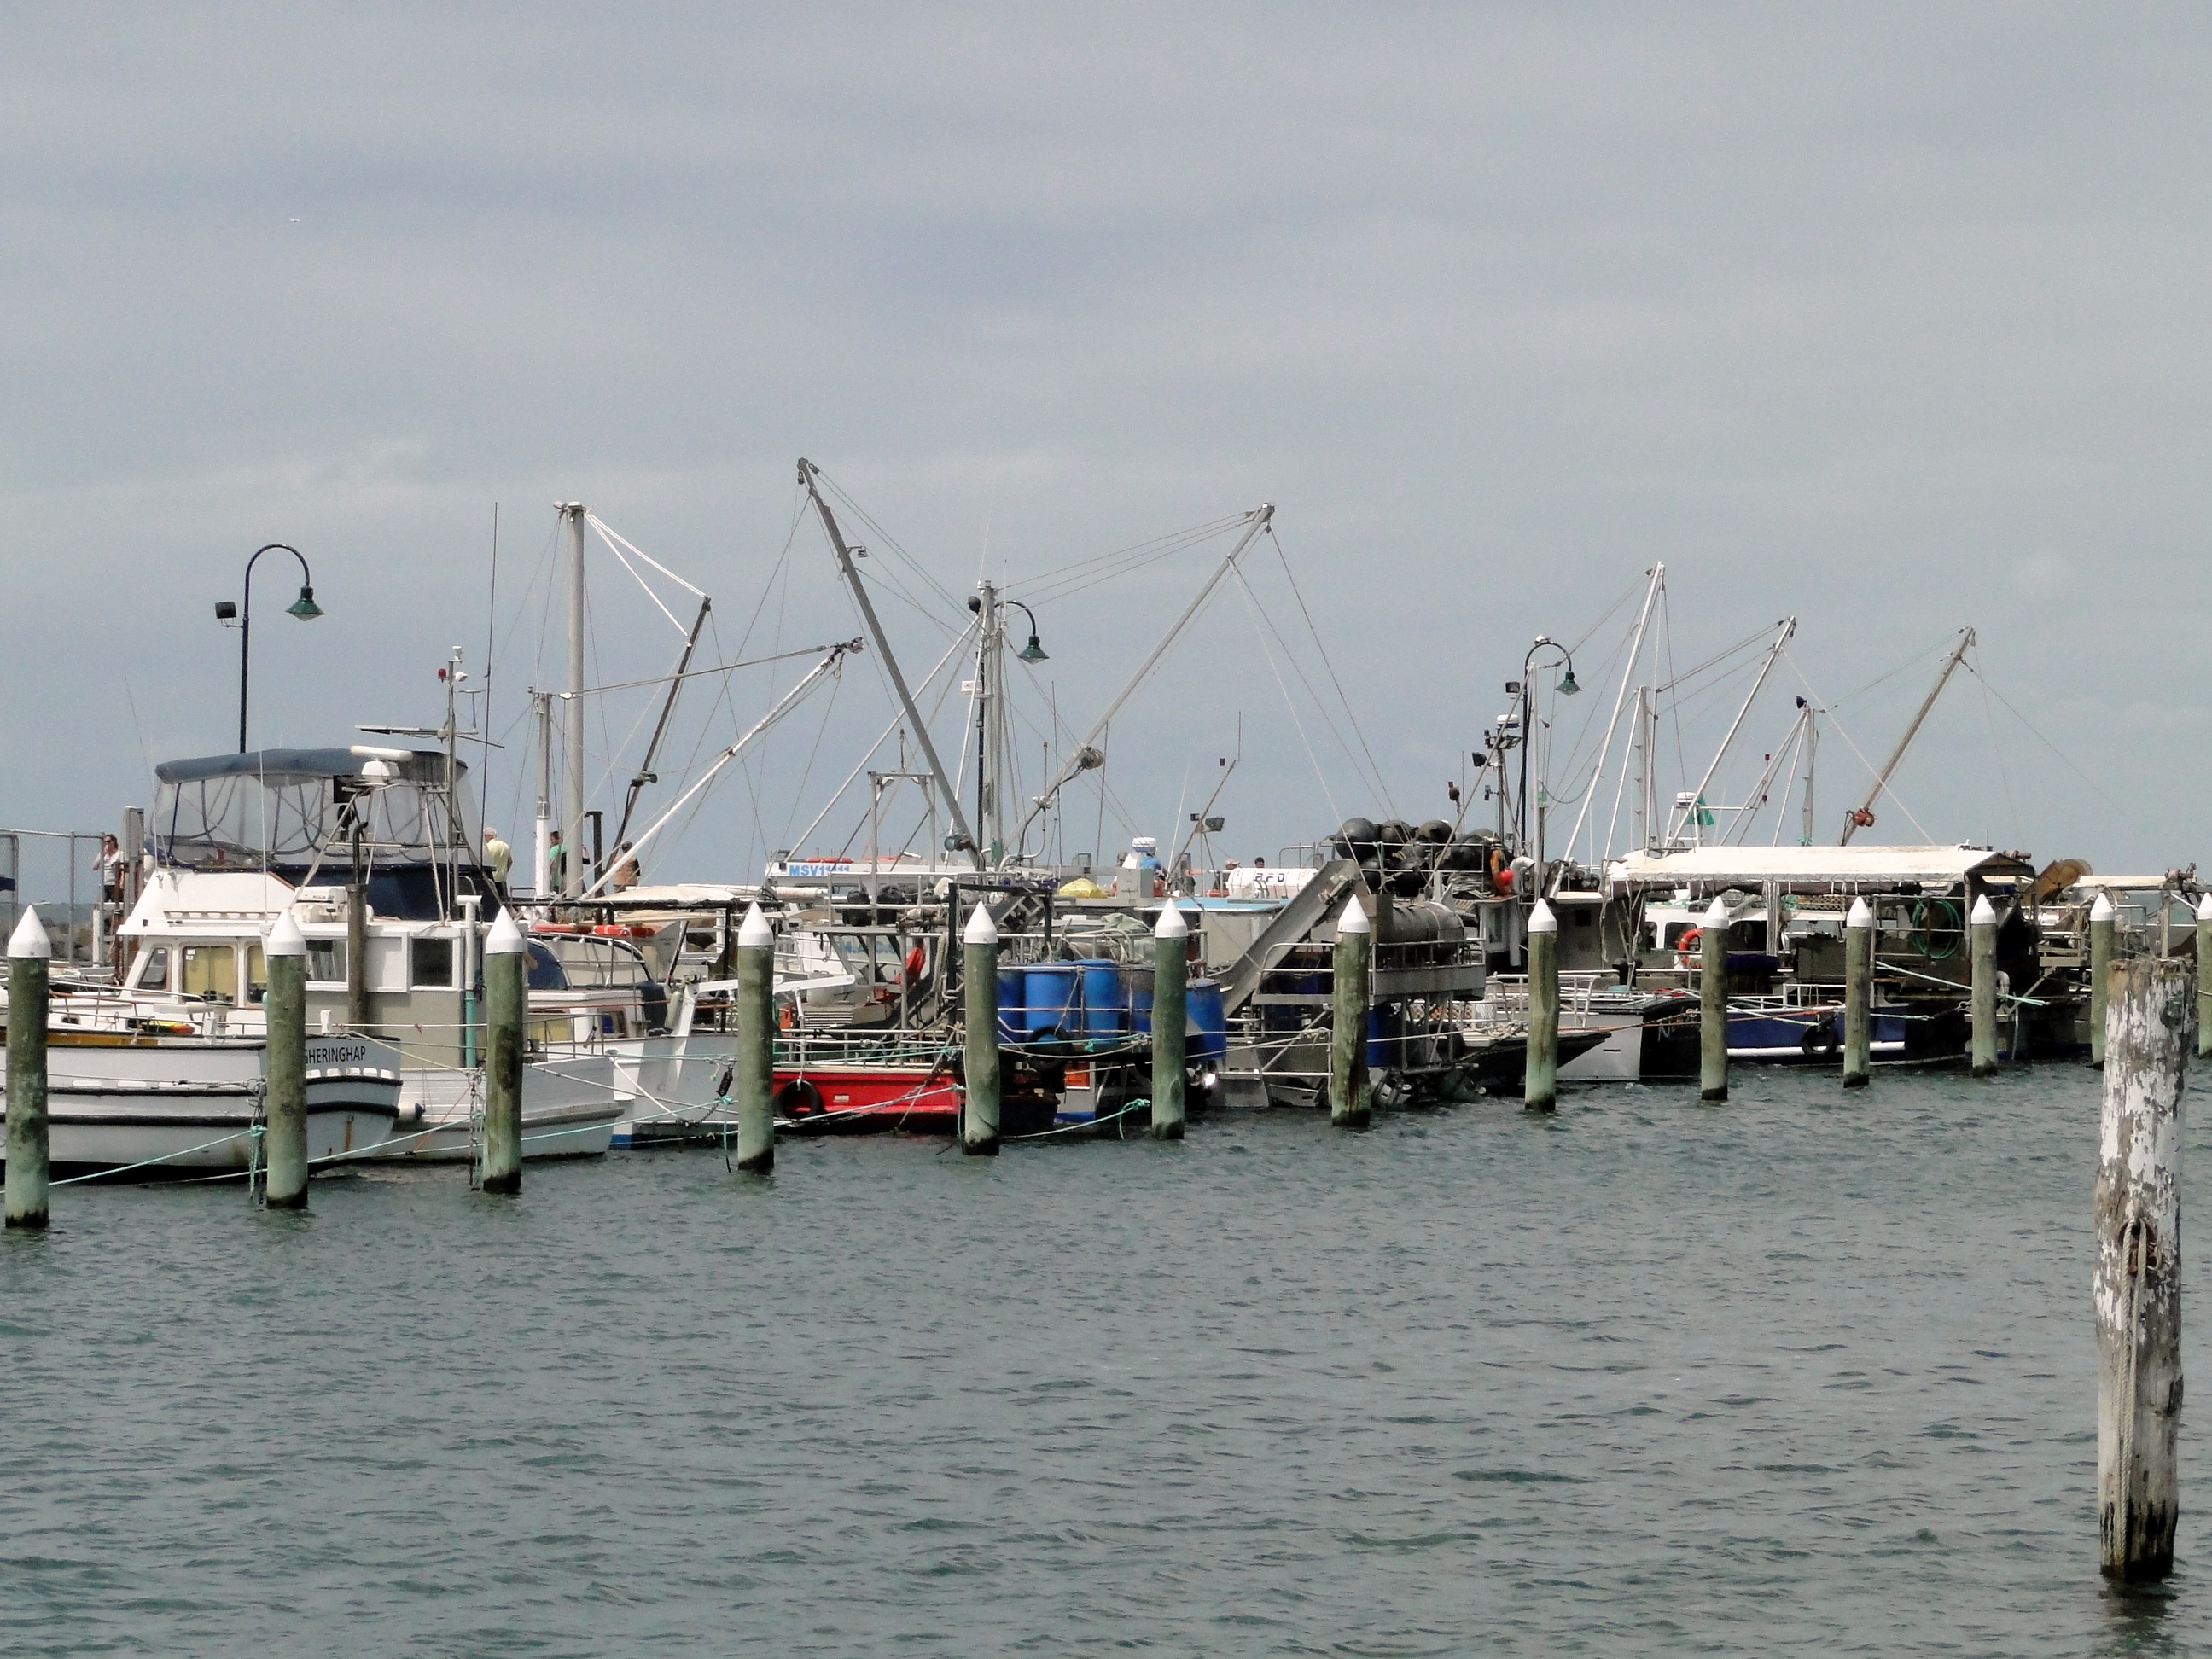 Portarlington Australia  city images : Portarlington pier and boats Wikimedia Commons